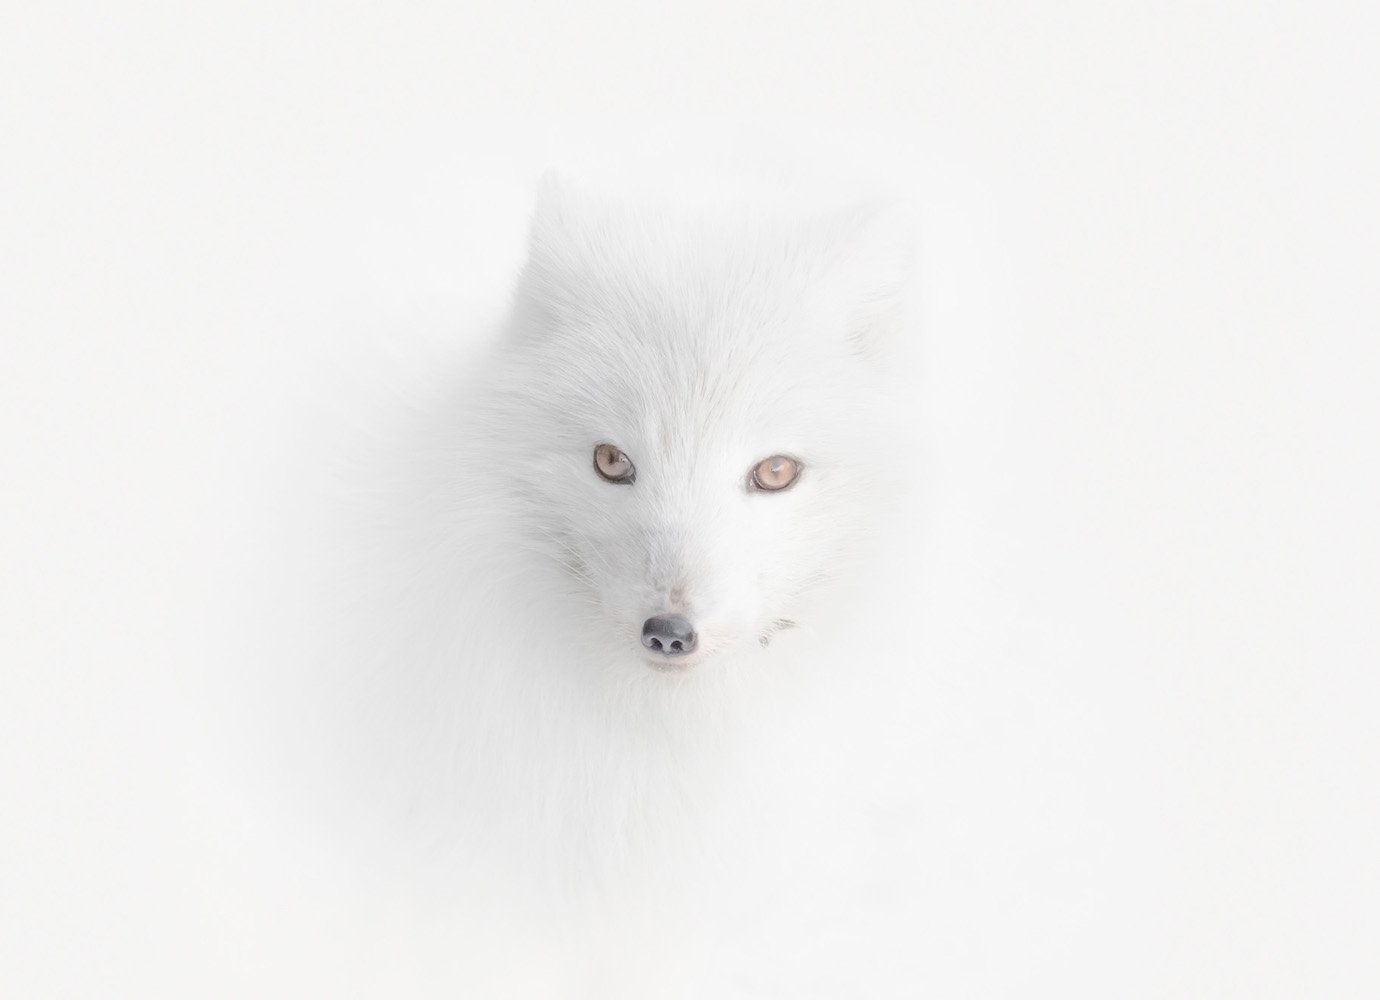 """""""Once on my expedition to Spitsbergen, there was a blizzard. Everything around was equally white. And suddenly I spotted this Arctic fox. He almost merged with the environment. Only his eyes and nose betrayed him."""" Image: Vladimir Alekseev/www.tpoty.com"""